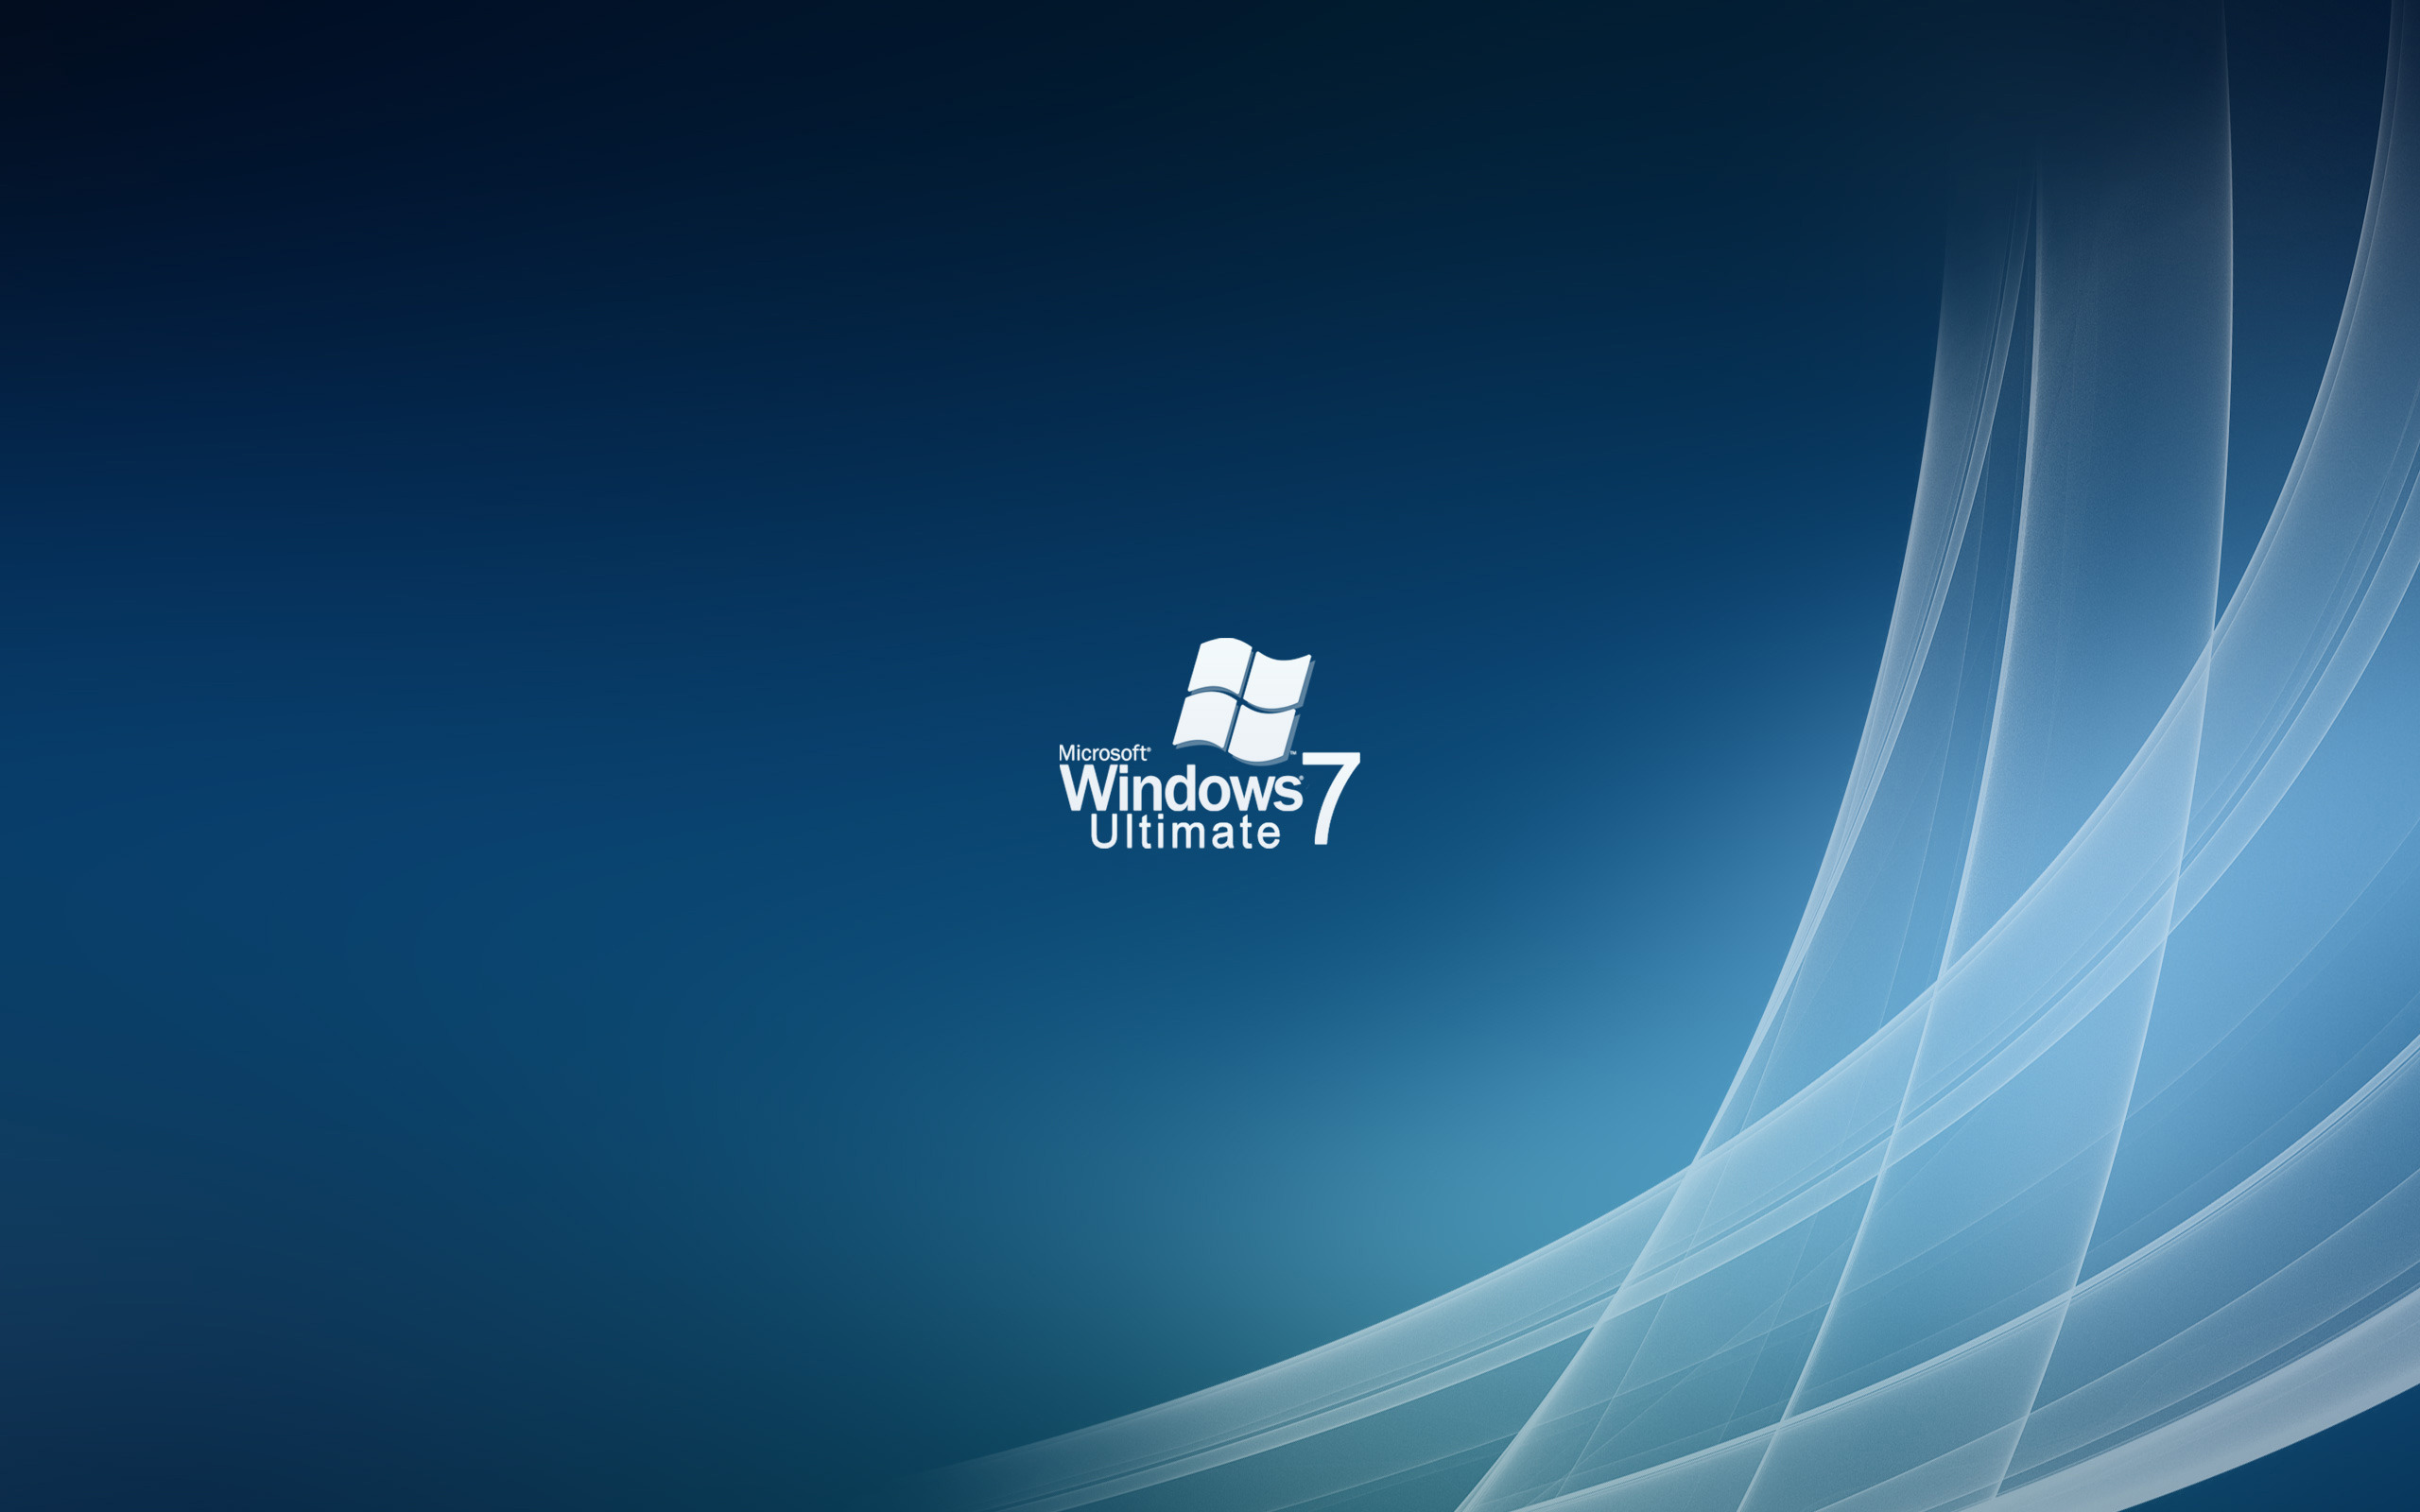 Window 7 Ultimate Wallpaper